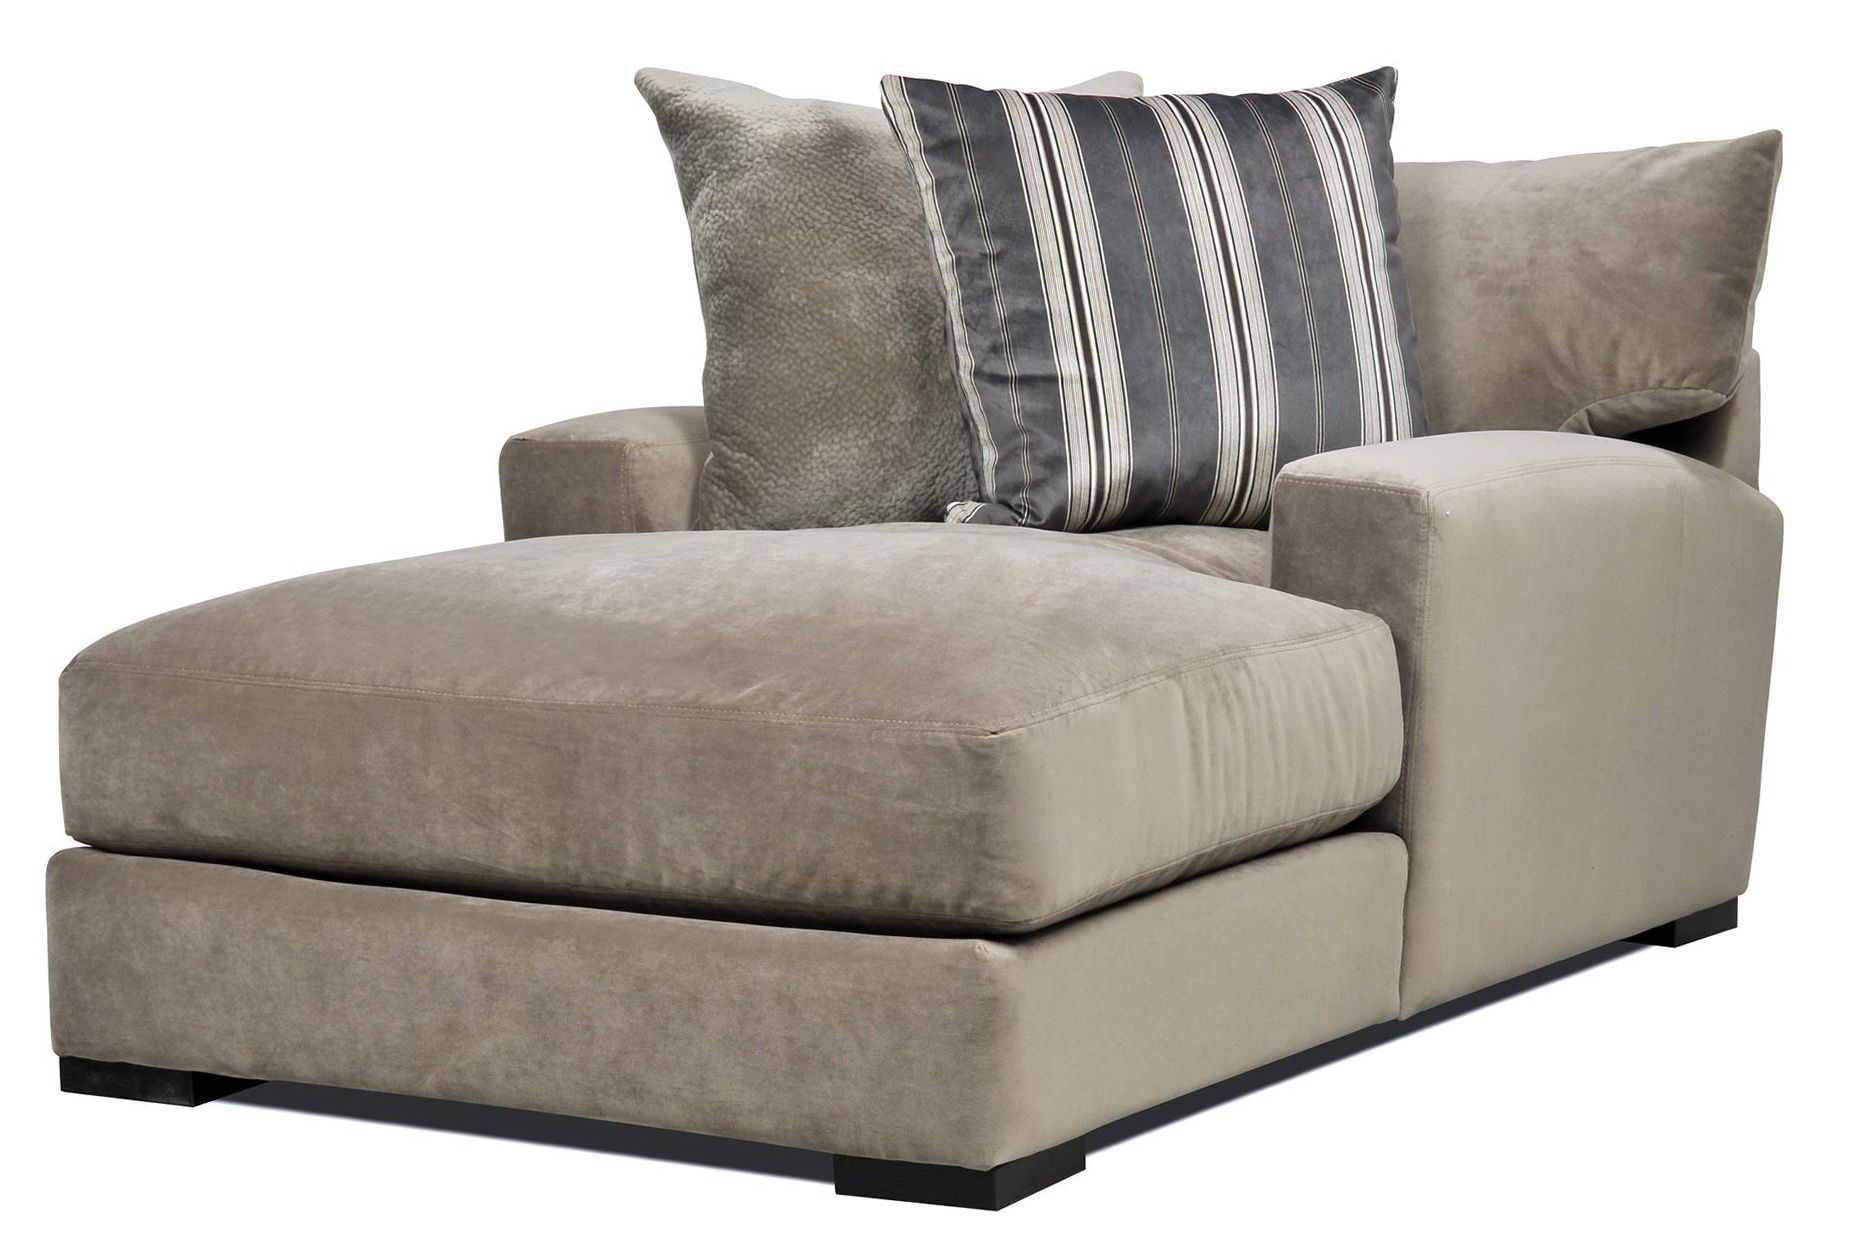 Exceptionnel Double Wide Chaise Lounge Indoor With 2 Cushions